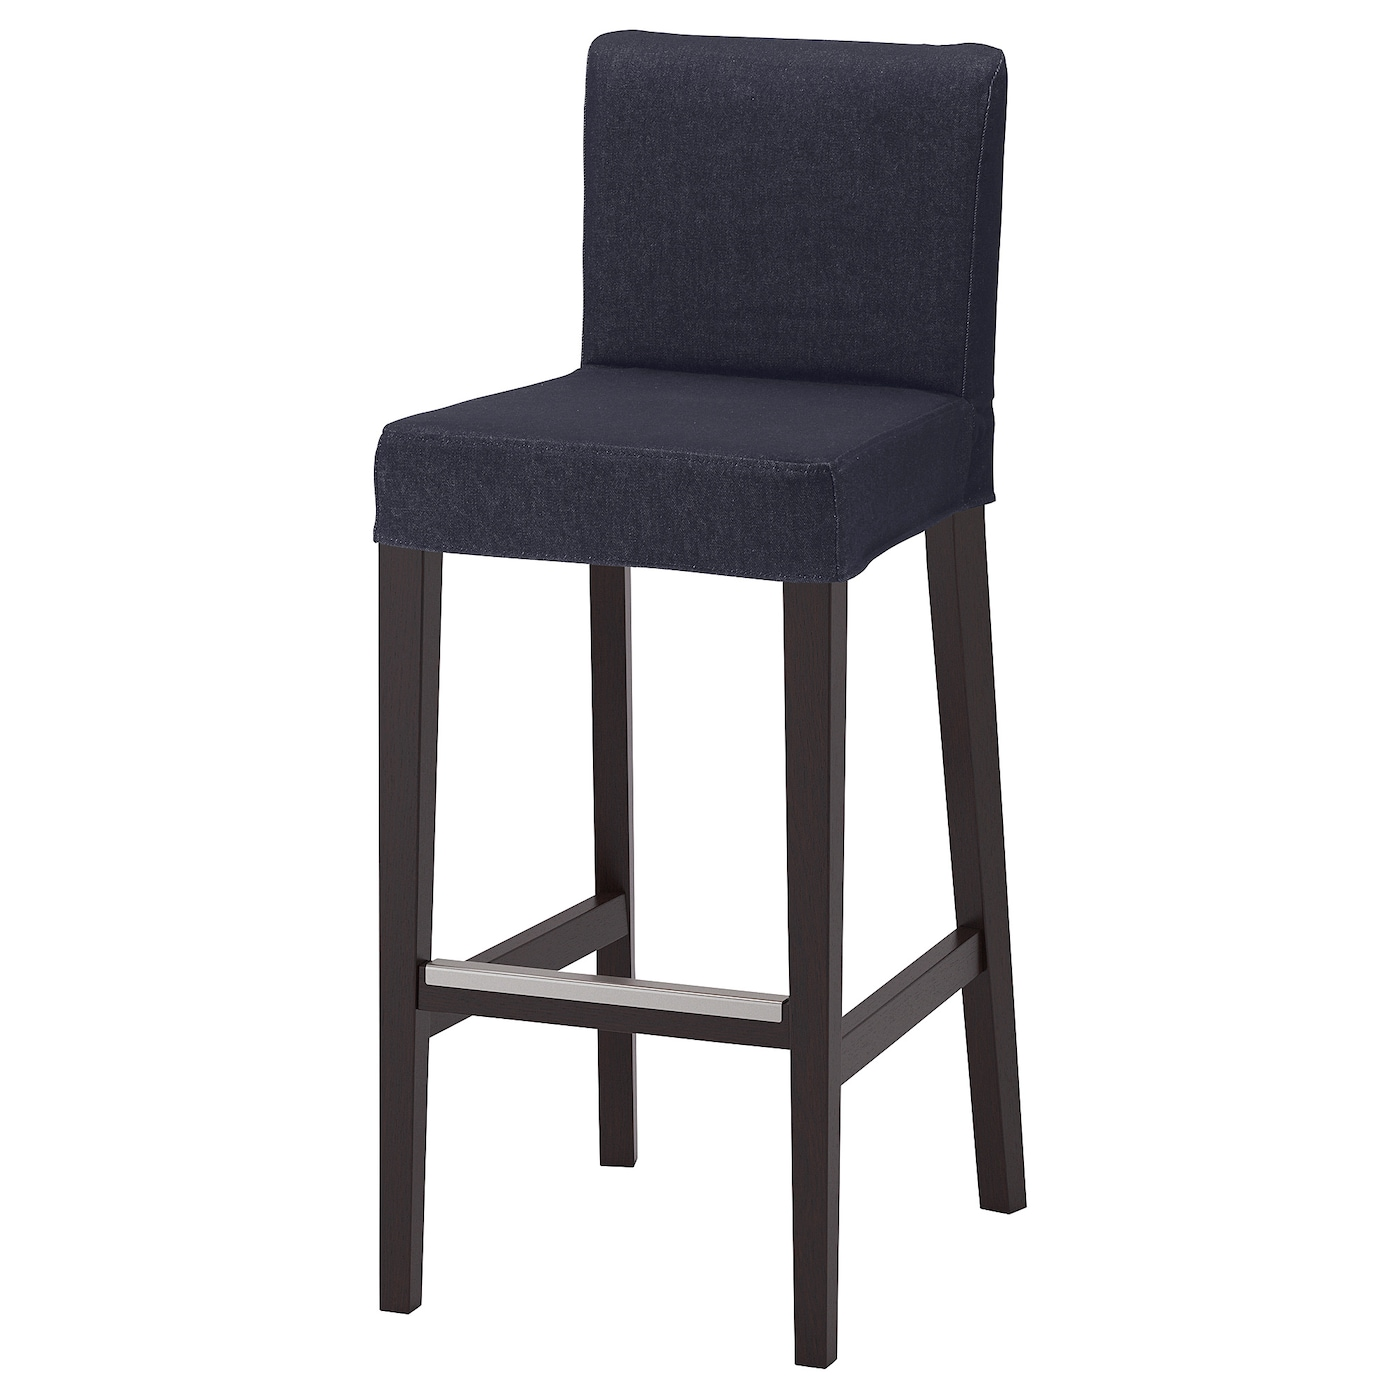 henriksdal tabouret de bar dossier brun noir vansta bleu fonc 74 cm ikea. Black Bedroom Furniture Sets. Home Design Ideas